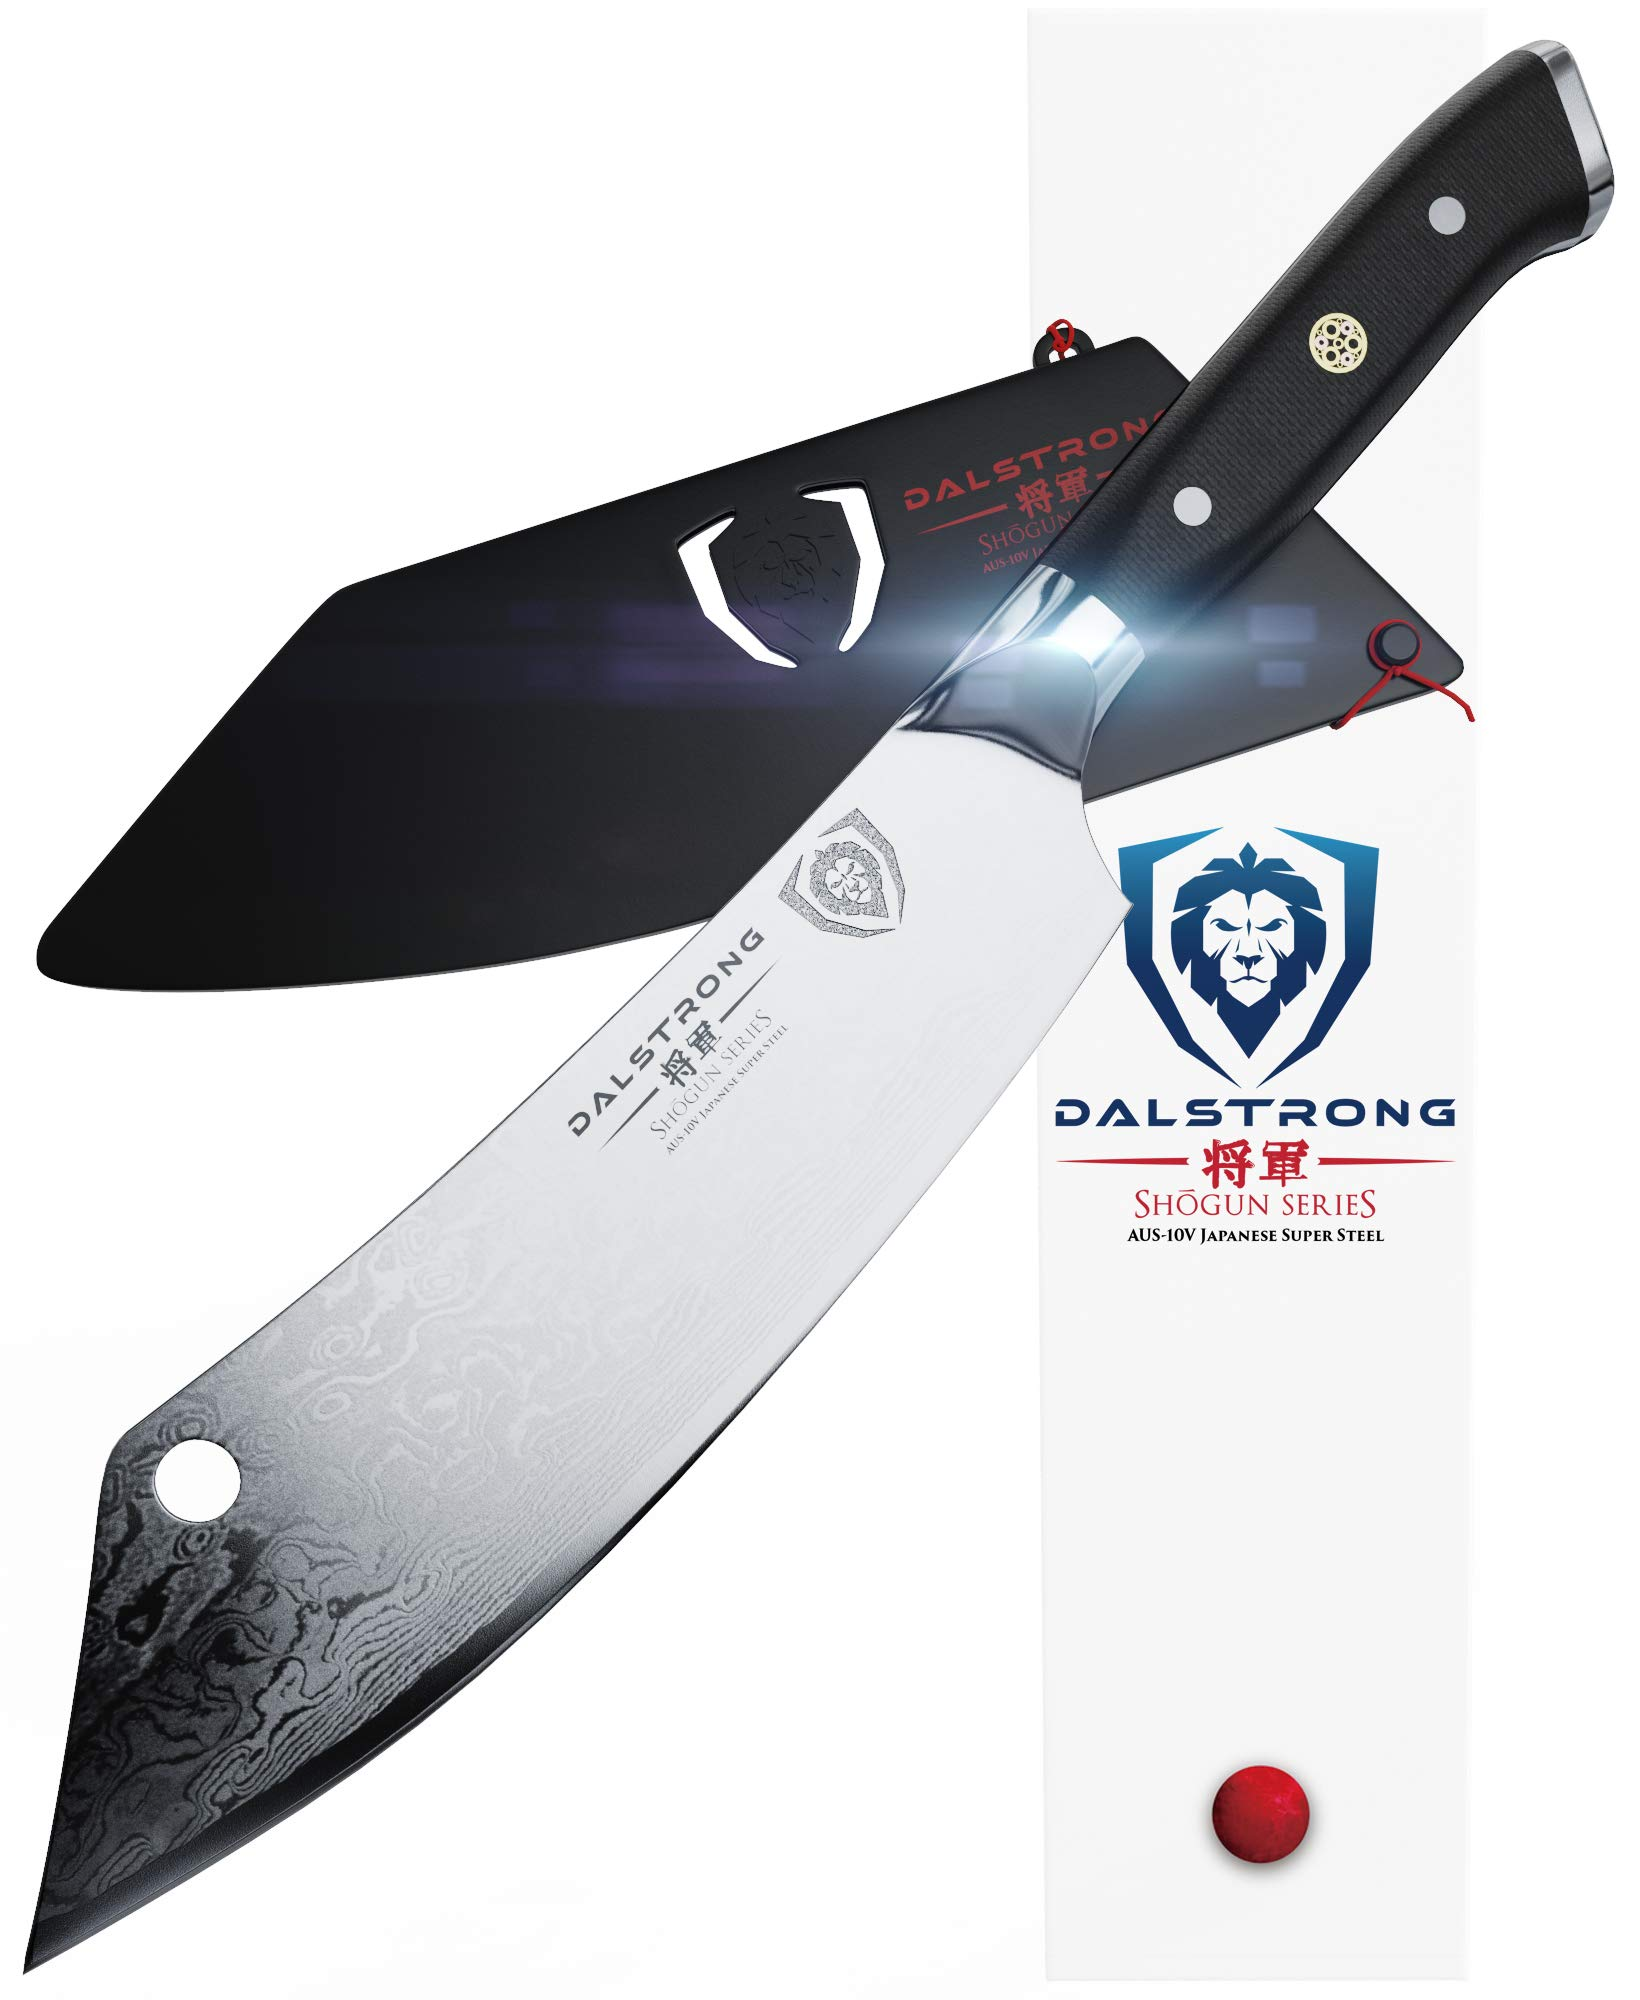 DALSTRONG - 8'' Chef's Knife''The Crixus'' - Shogun Series - Chef & Cleaver Hybrid - Japanese AUS-10V Super Steel - Meat Knife - w/Sheath by Dalstrong